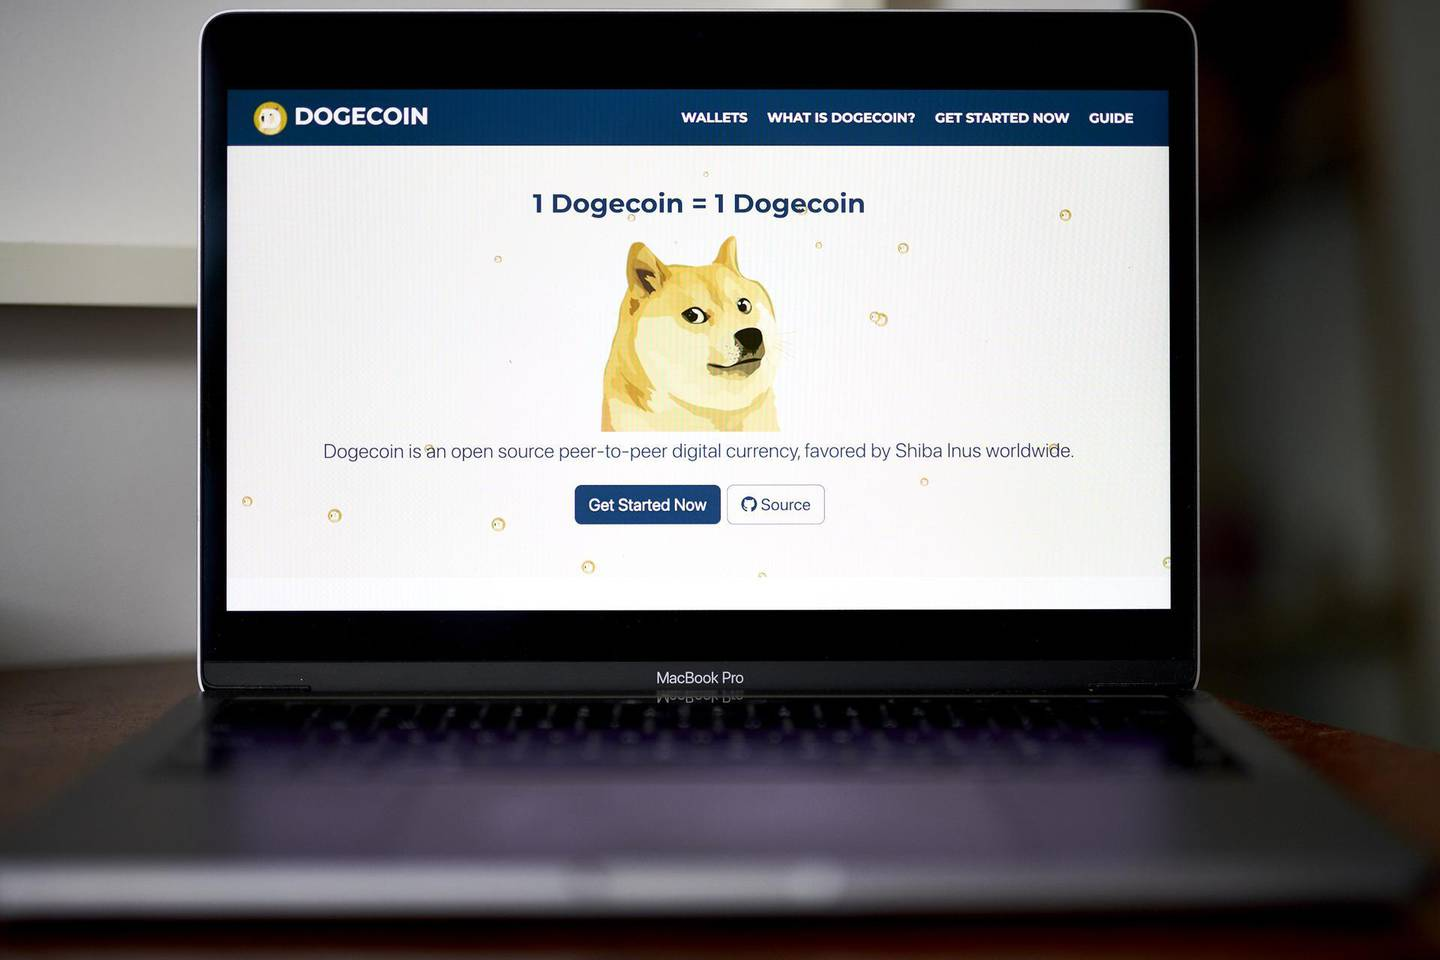 """The Dogecoin website on a laptop computer arranged in the Brooklyn borough of New York, U.S., on Friday, May 7, 2021. Dogecoin, a cryptocurrency conceived as a joke but now the world's fifth-most valuable,plunged from an all-time highafter its most famous cheerleader,Elon Musk, jokingly called it """"a hustle"""" on late-night TV. Photographer: Gabby Jones/Bloomberg"""